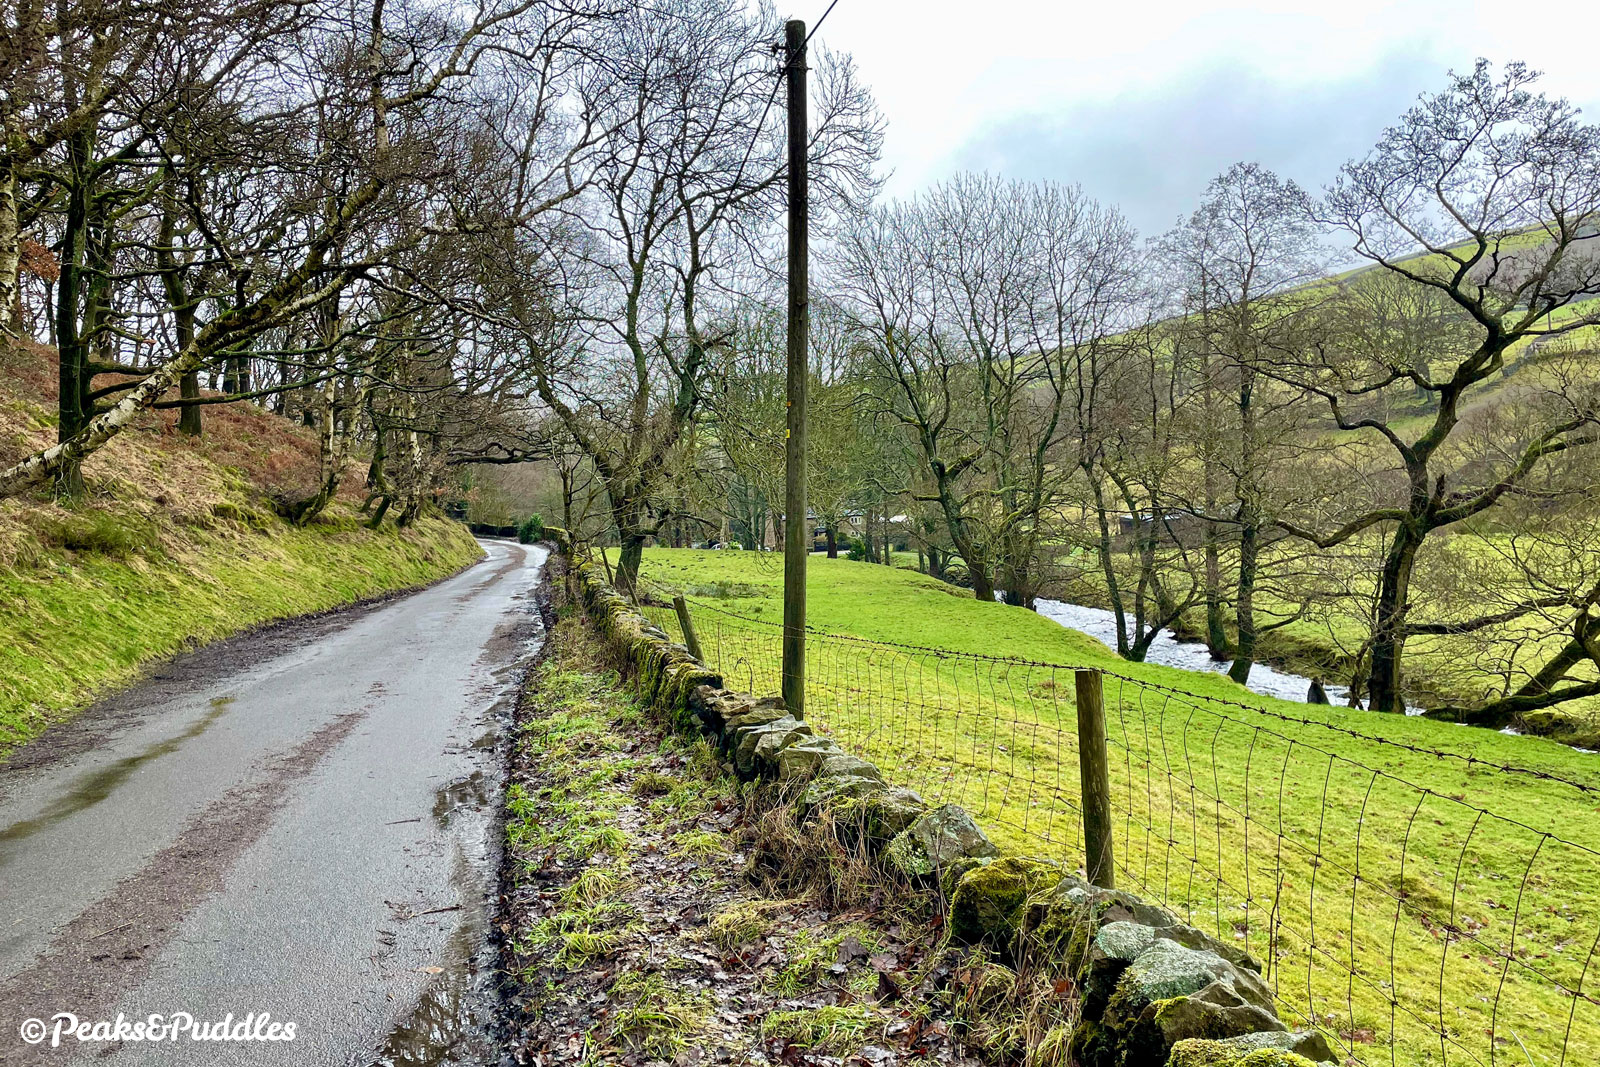 At certain points, you can still make out a flattened indent in the bank beside the river, where the Kinder Reservoir Railway briefly ran.